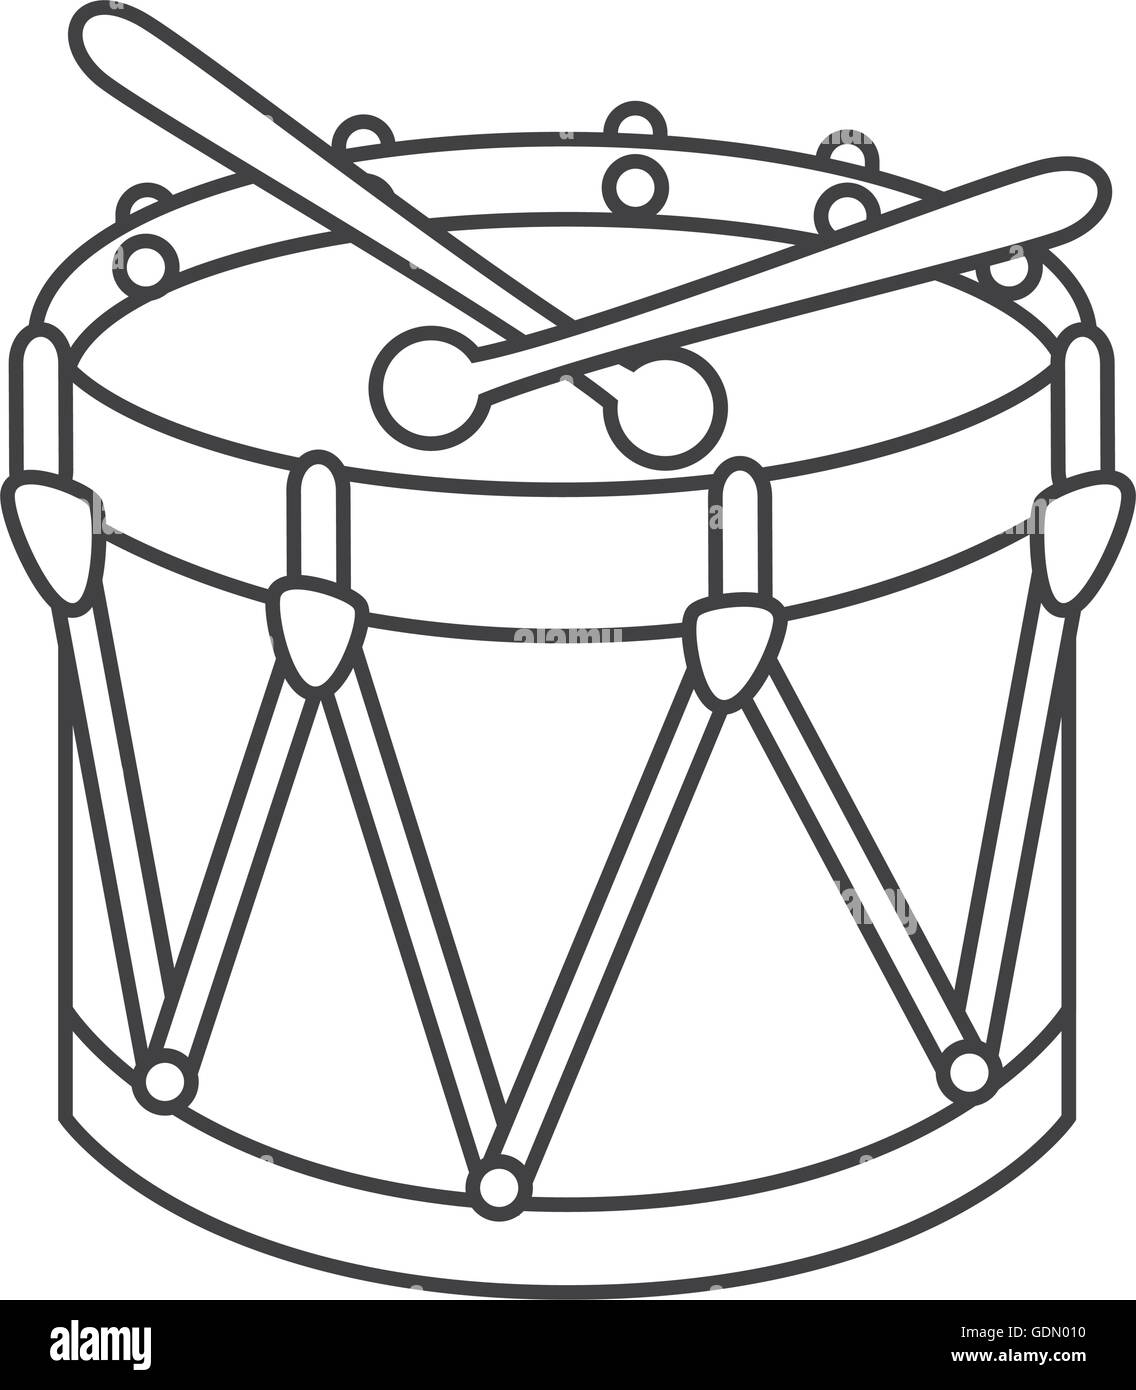 Drum Kit Toy Icon Vector Illustration